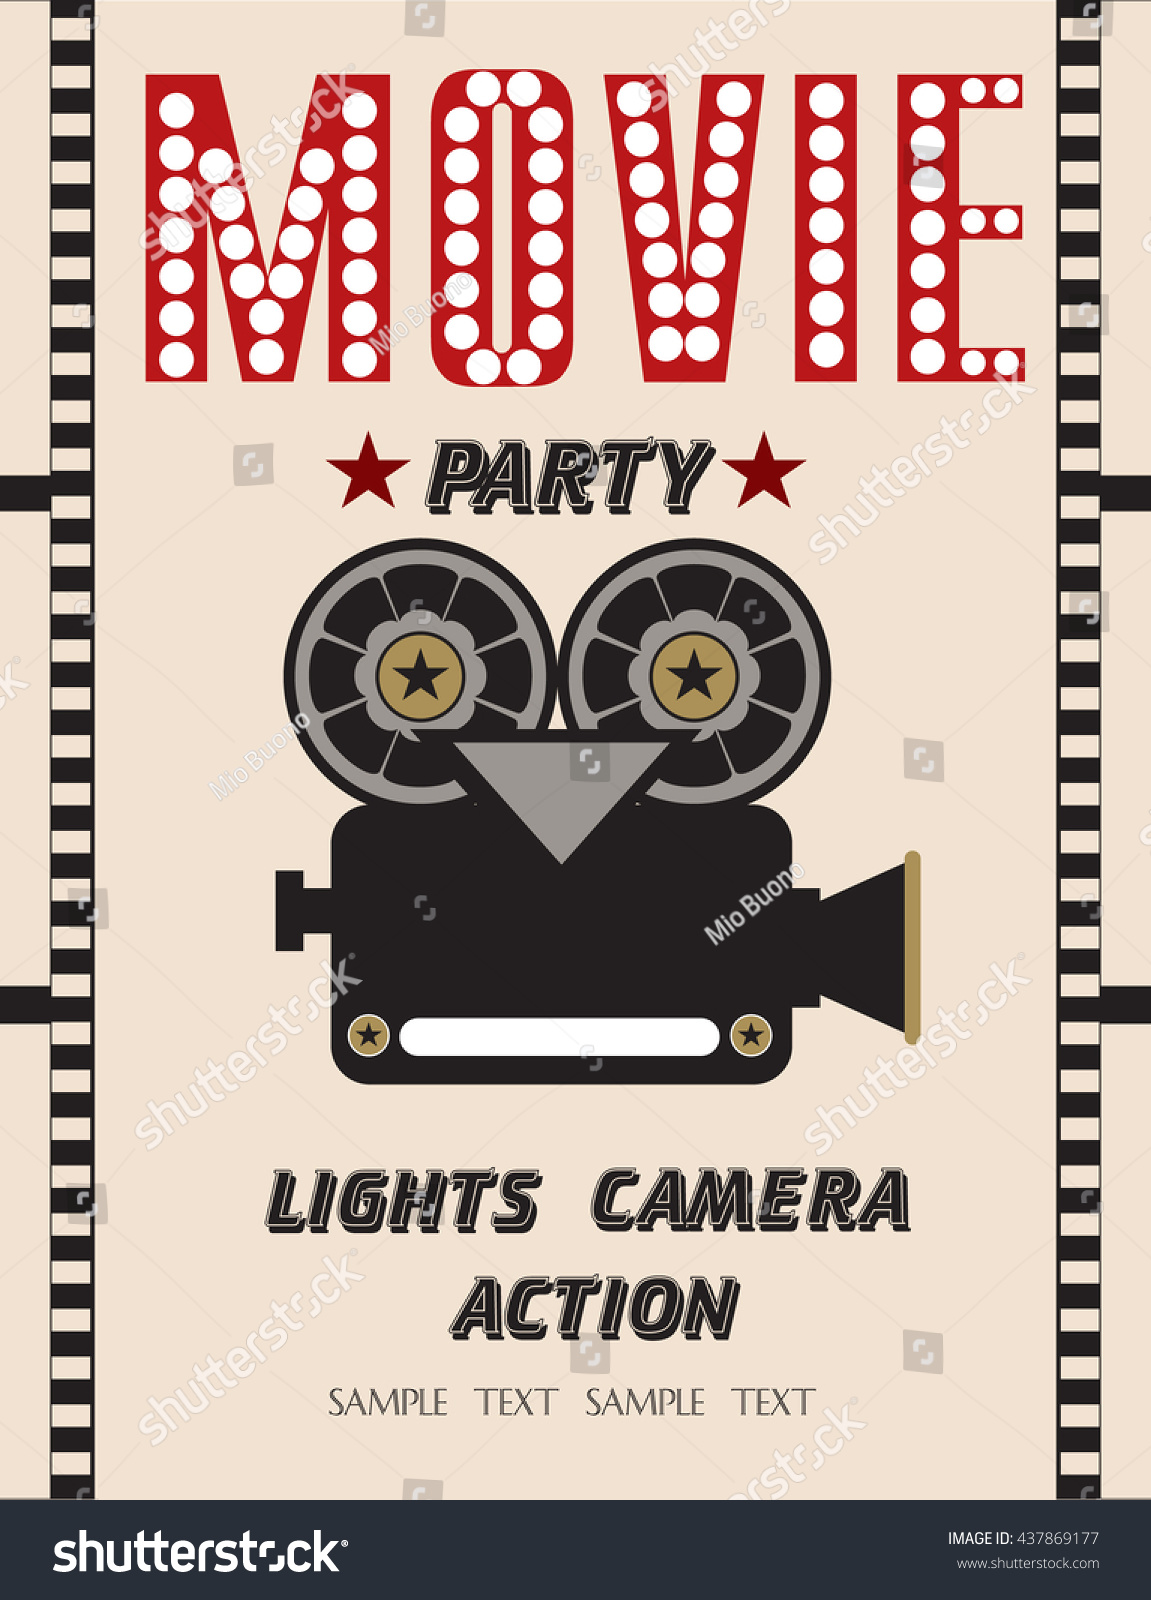 Movie party hollywood party invitation card stock vector 437869177 movie party hollywood party invitation card stock vector 437869177 shutterstock stopboris Gallery